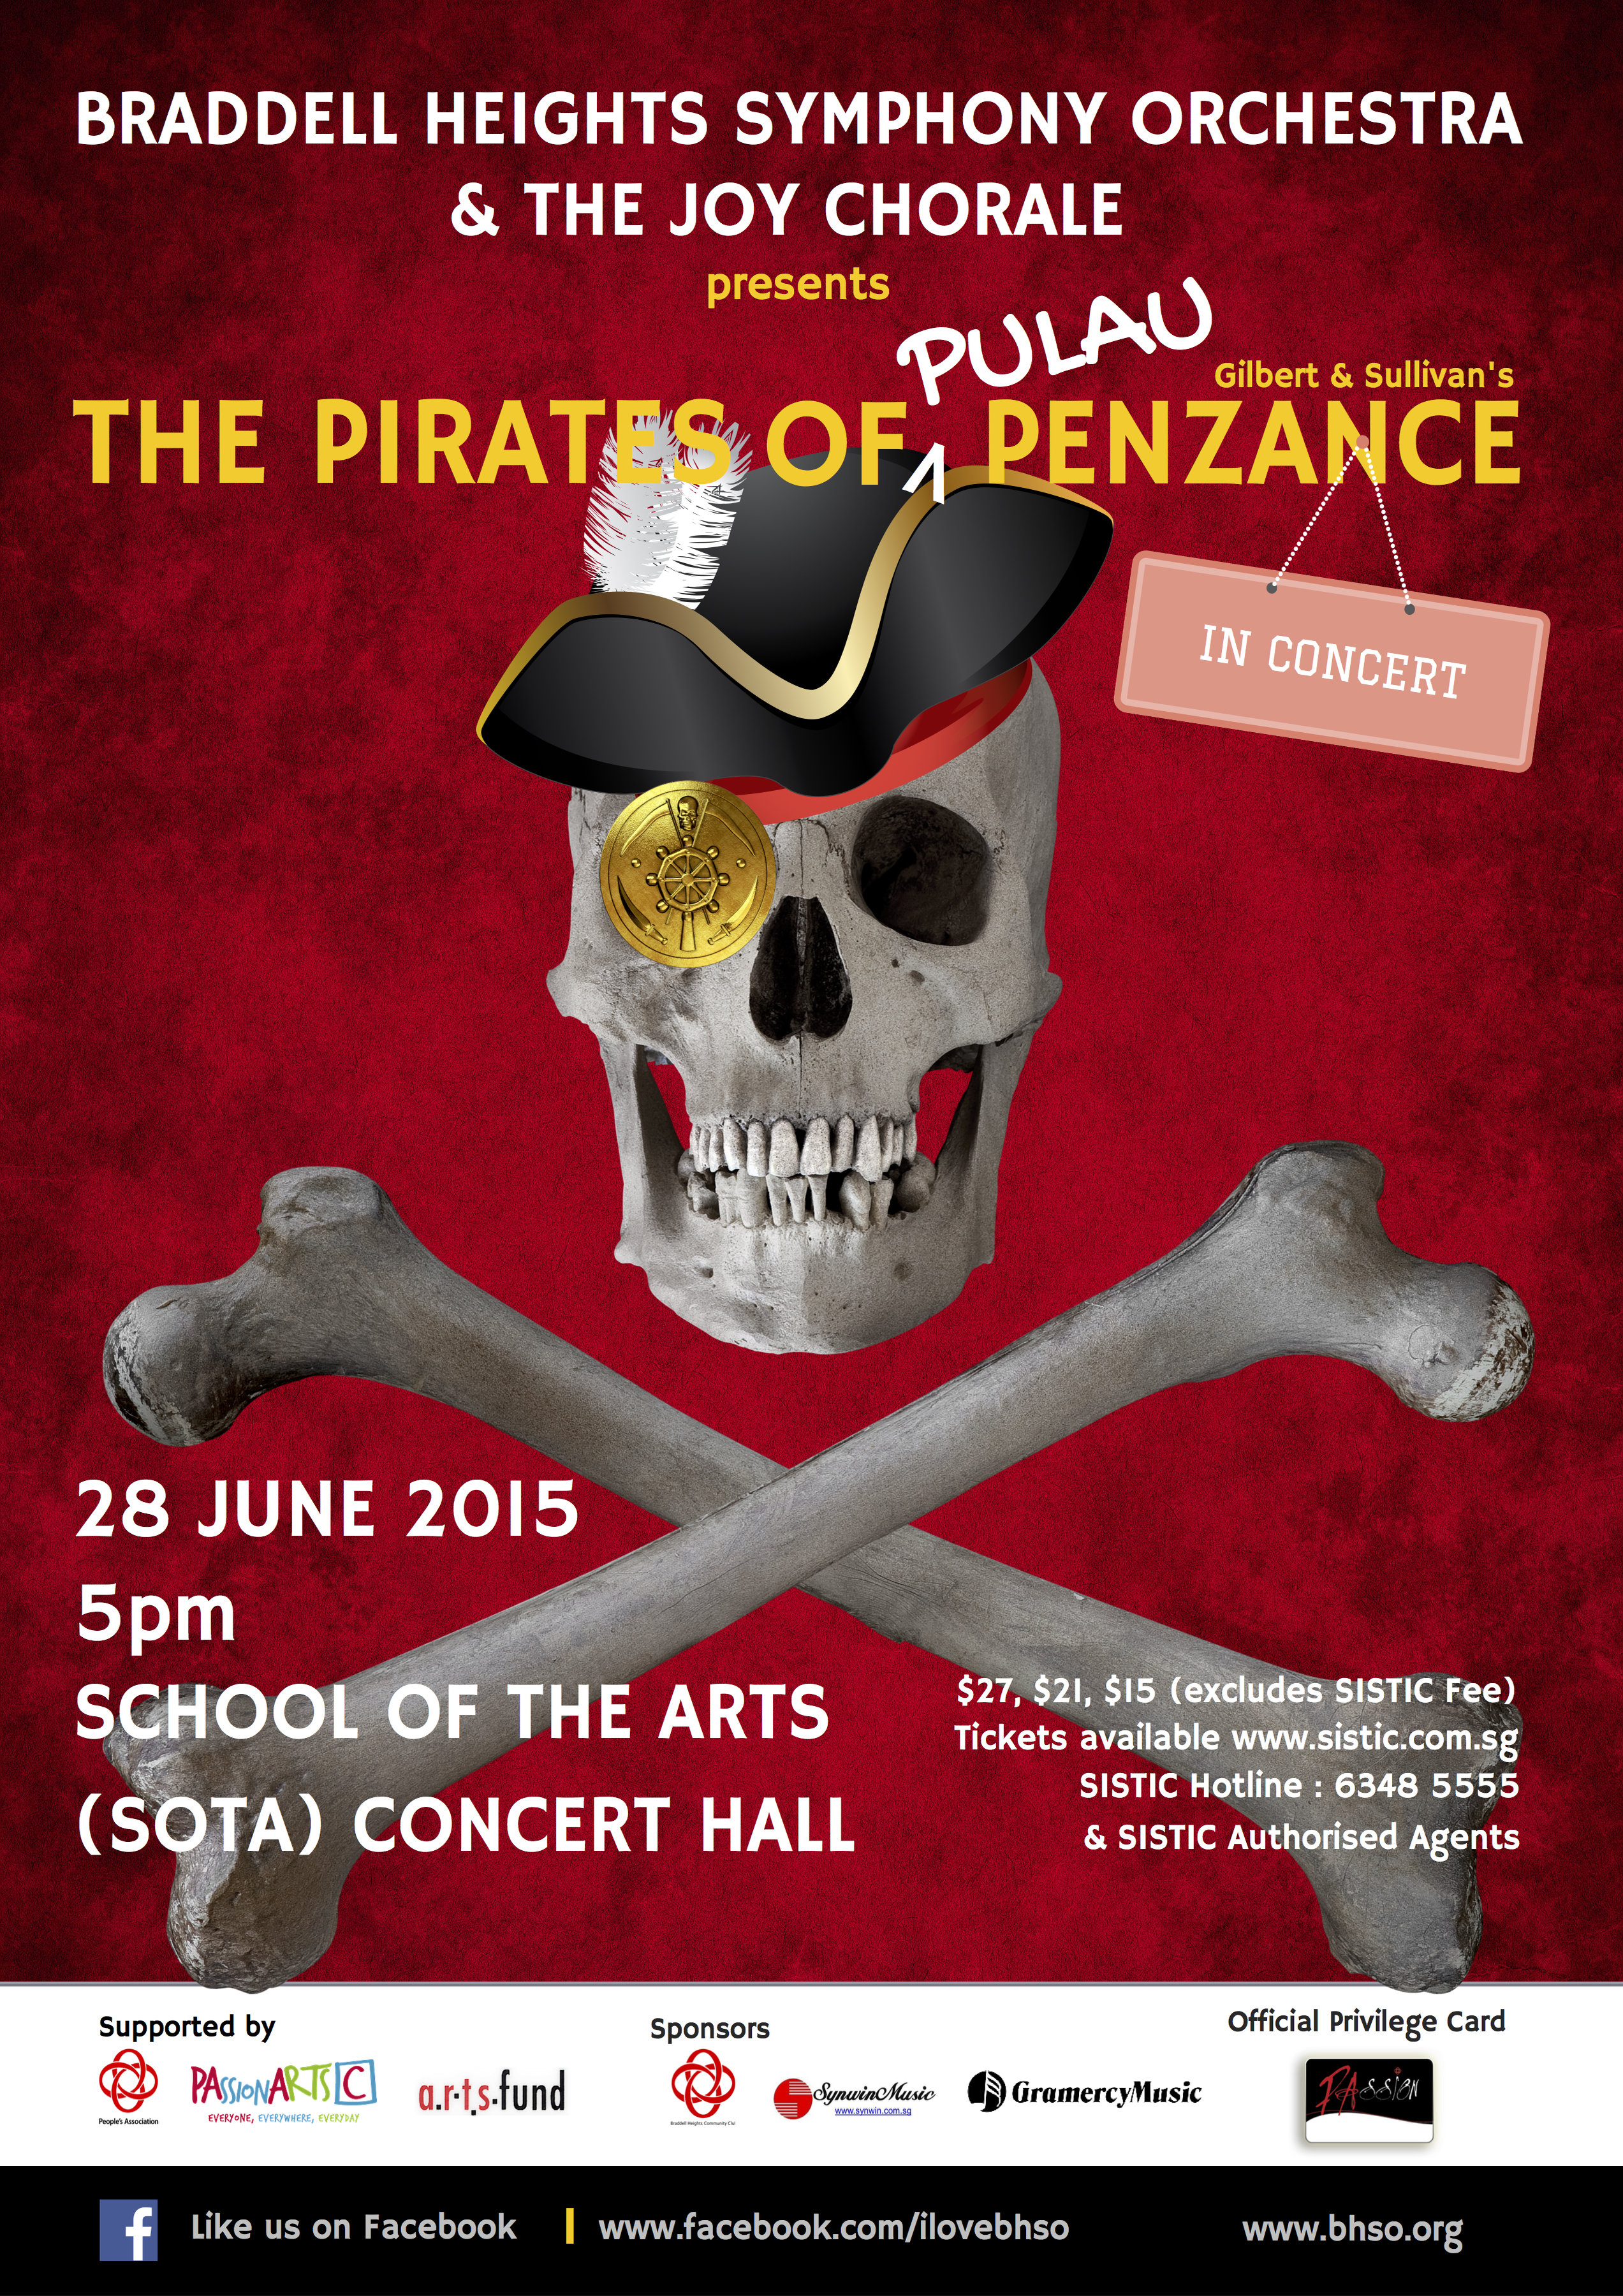 The Pirates of Pulau Penzance (Property of BHSO)